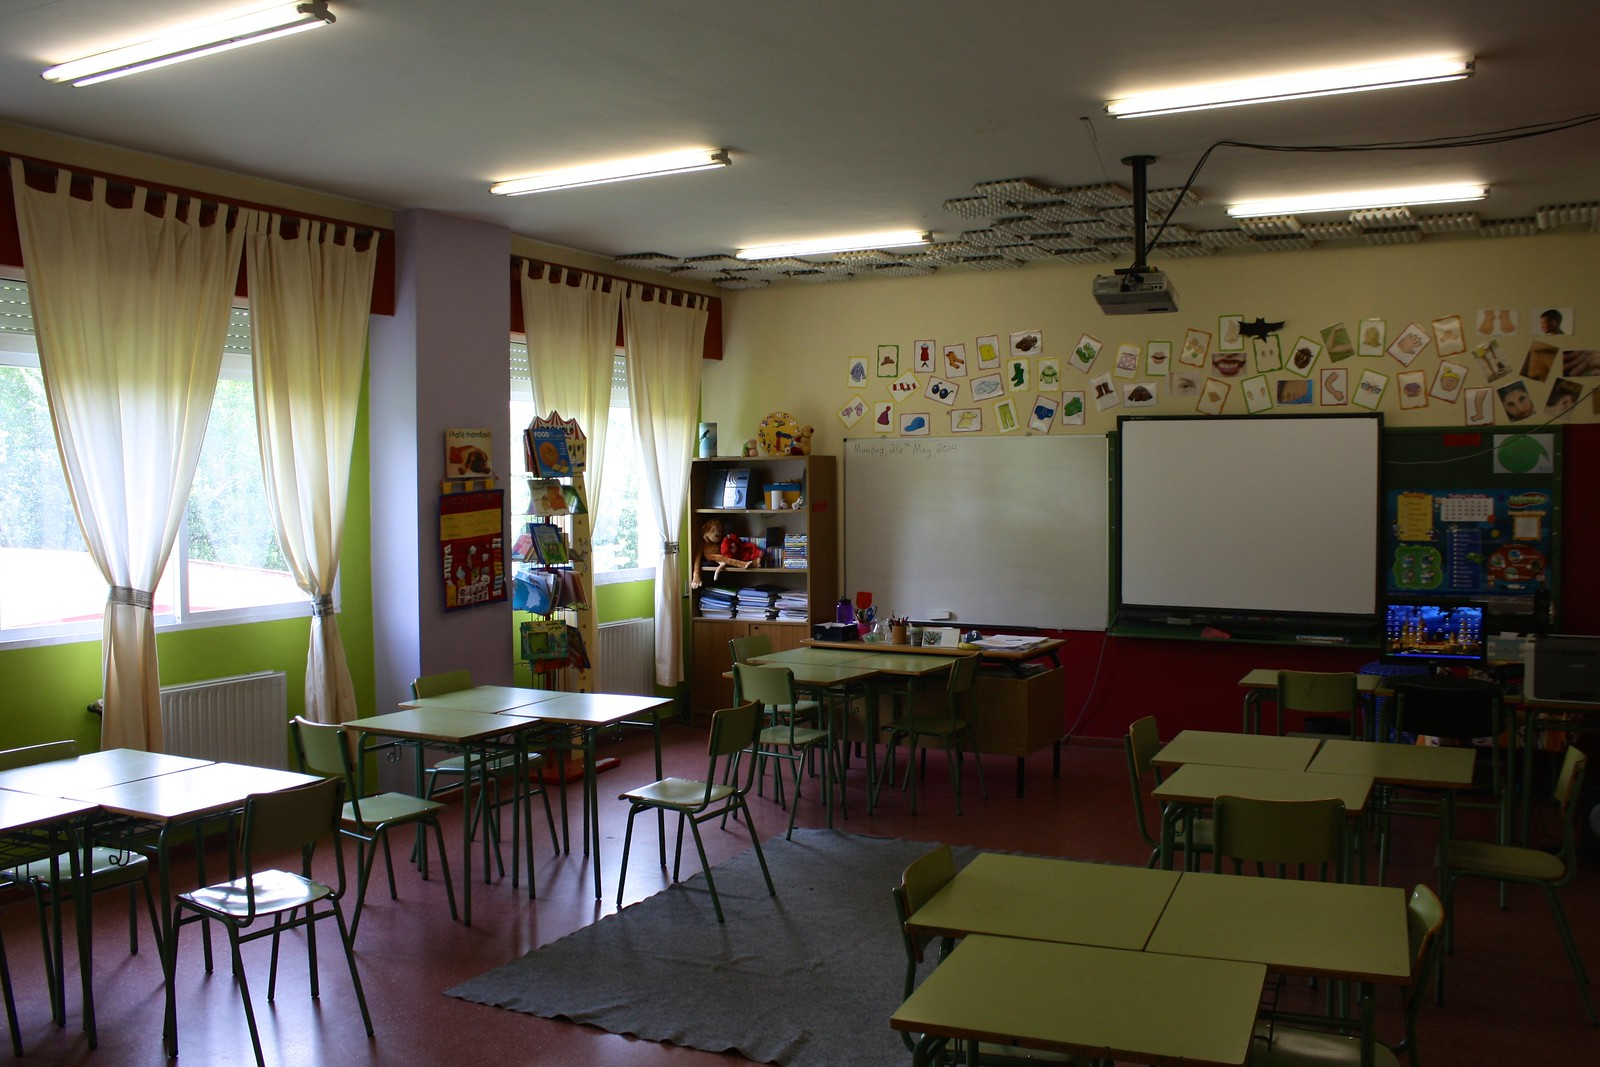 Culture shock at Spanish school